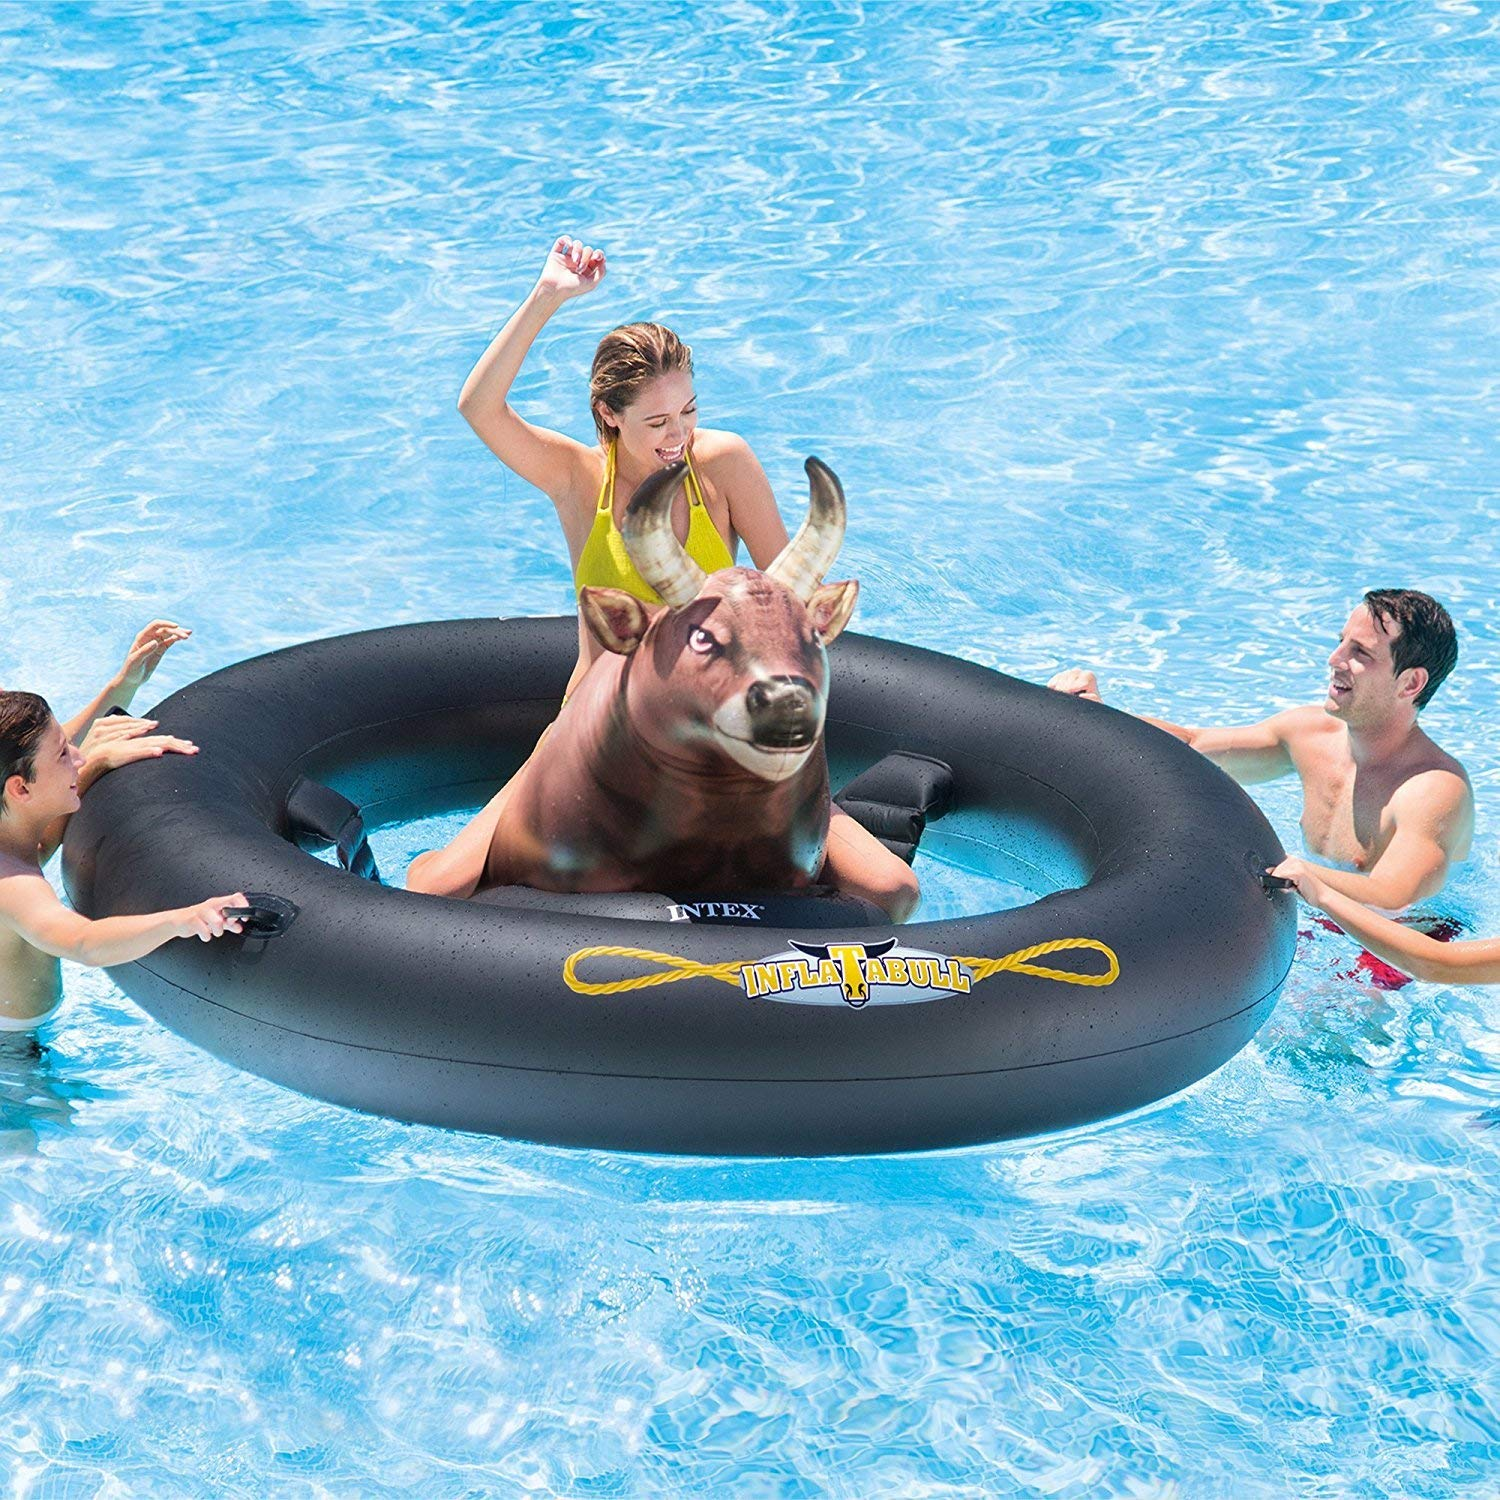 Intex Inflat-A-Bull Inflatable Pool Toyの画像